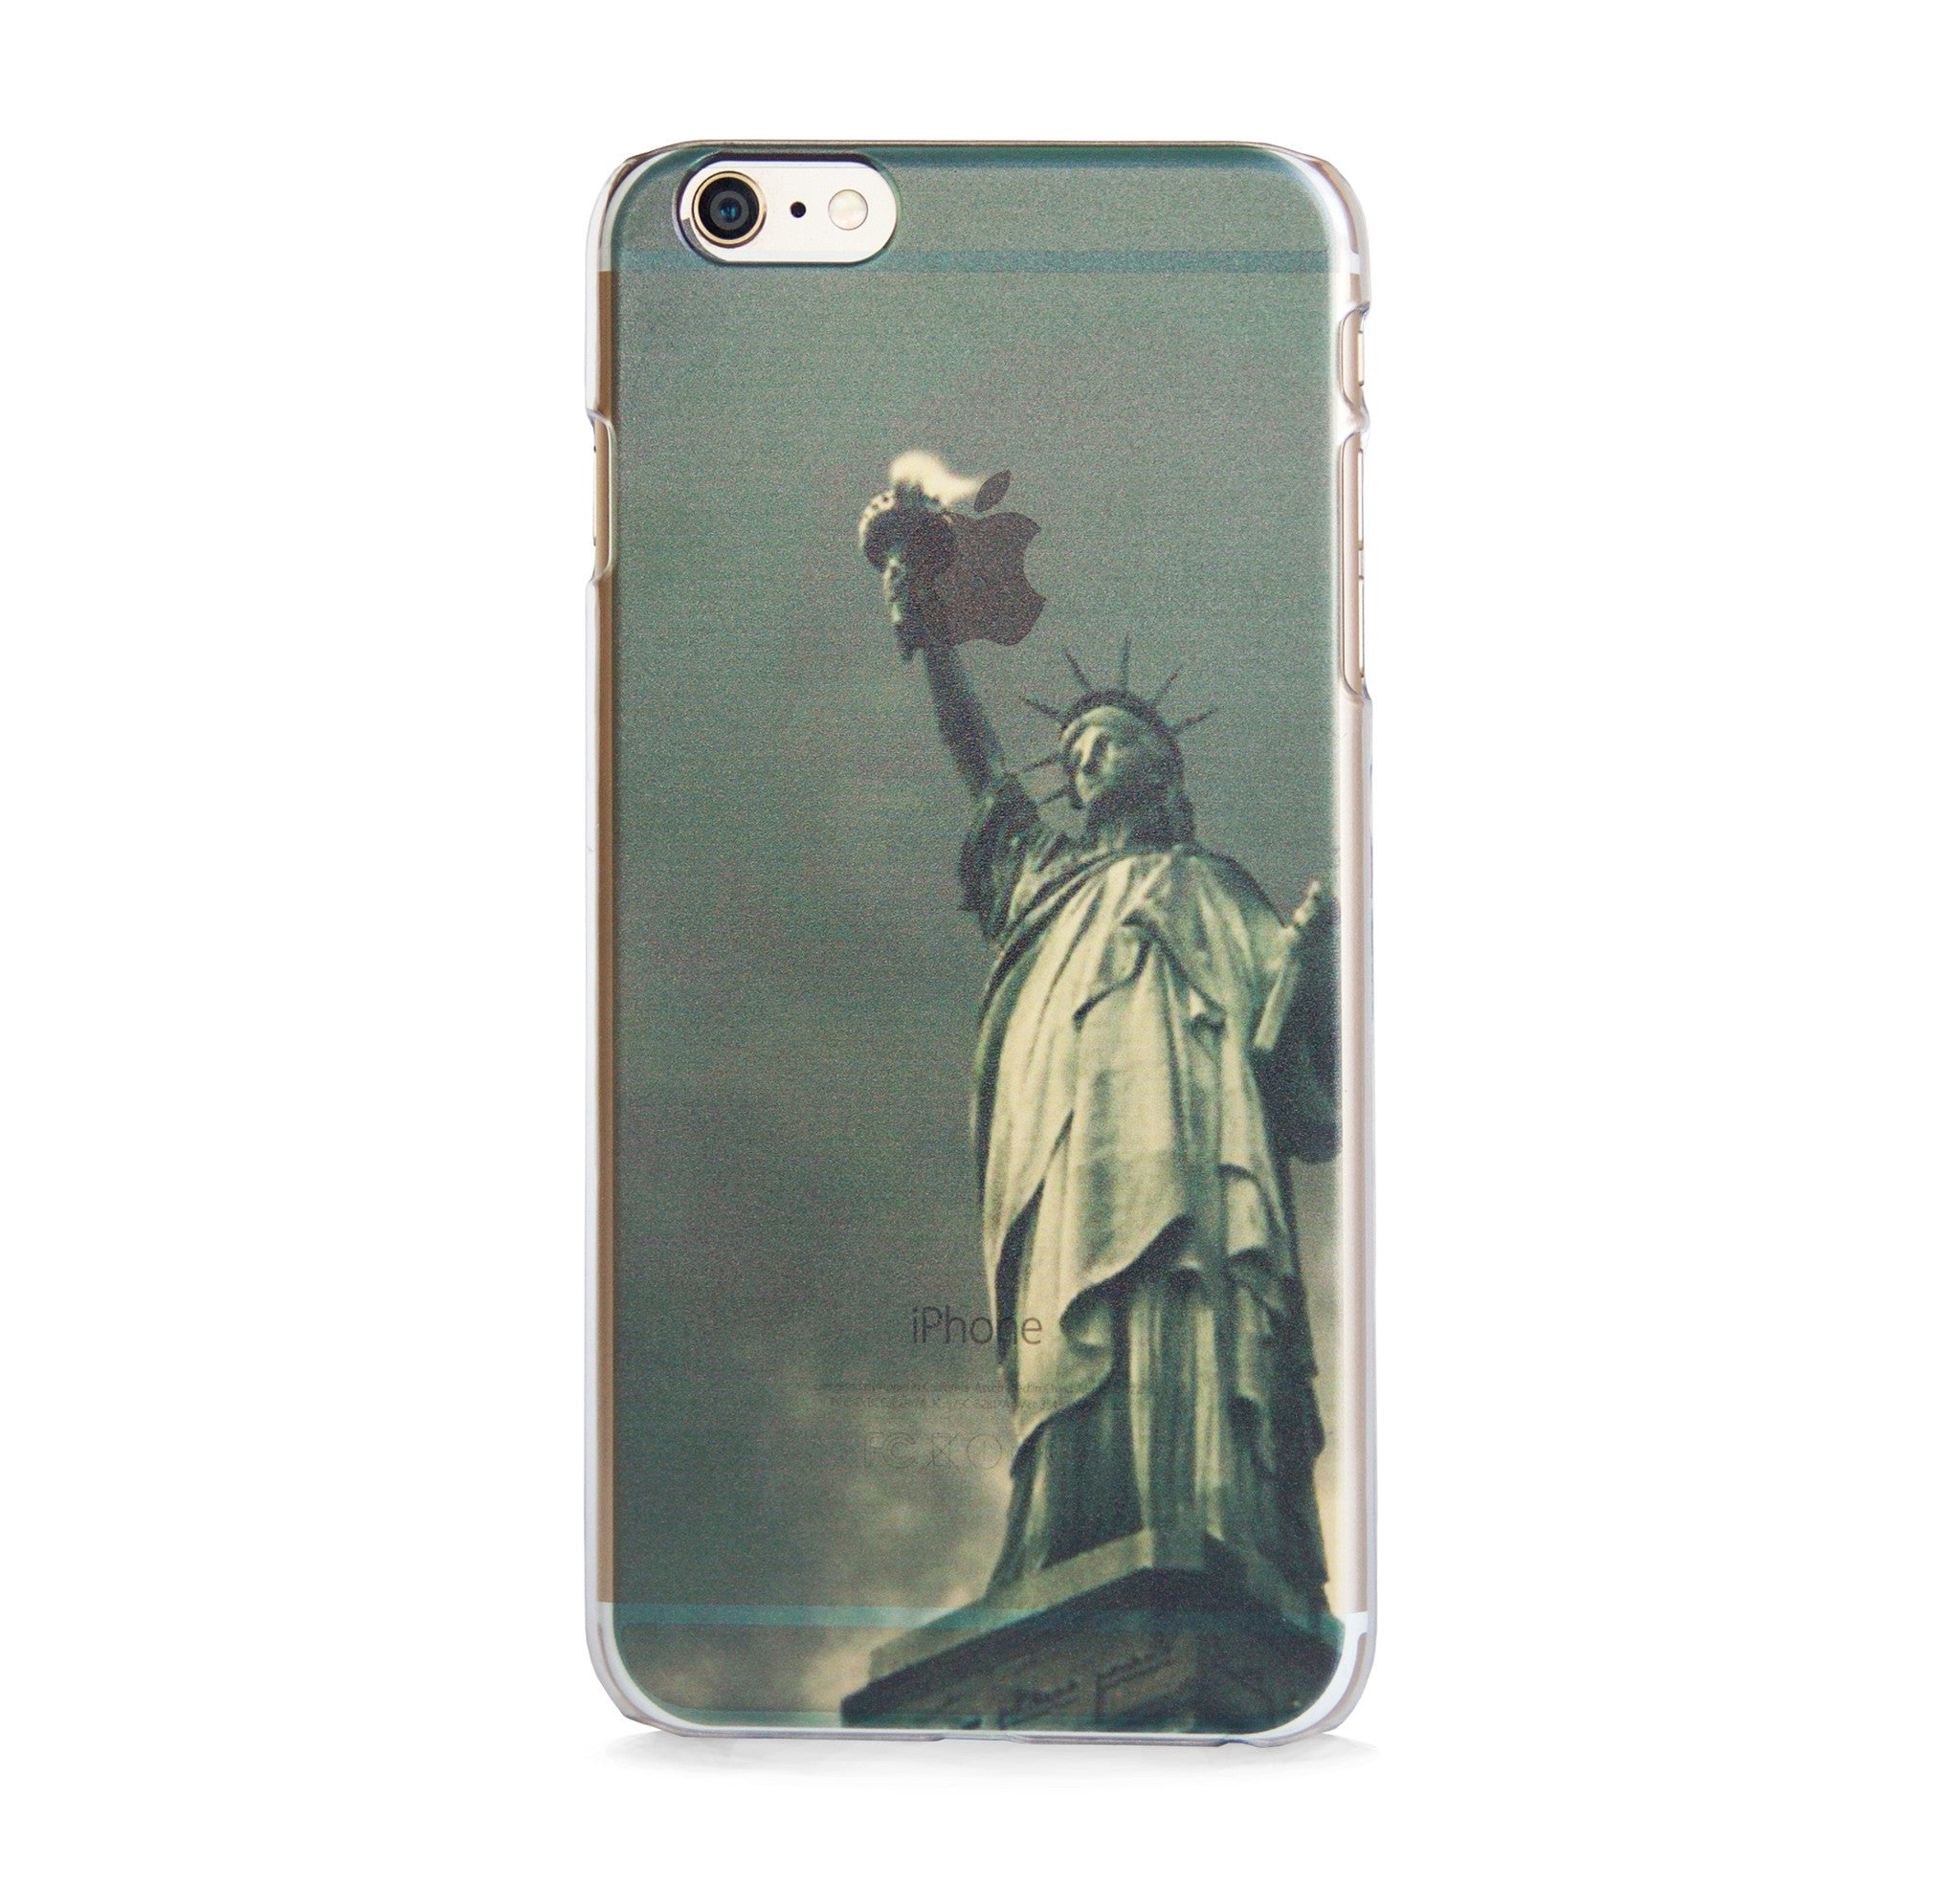 EMPIRE STATE OF IPHONE 6/6s CASE NEW YORK